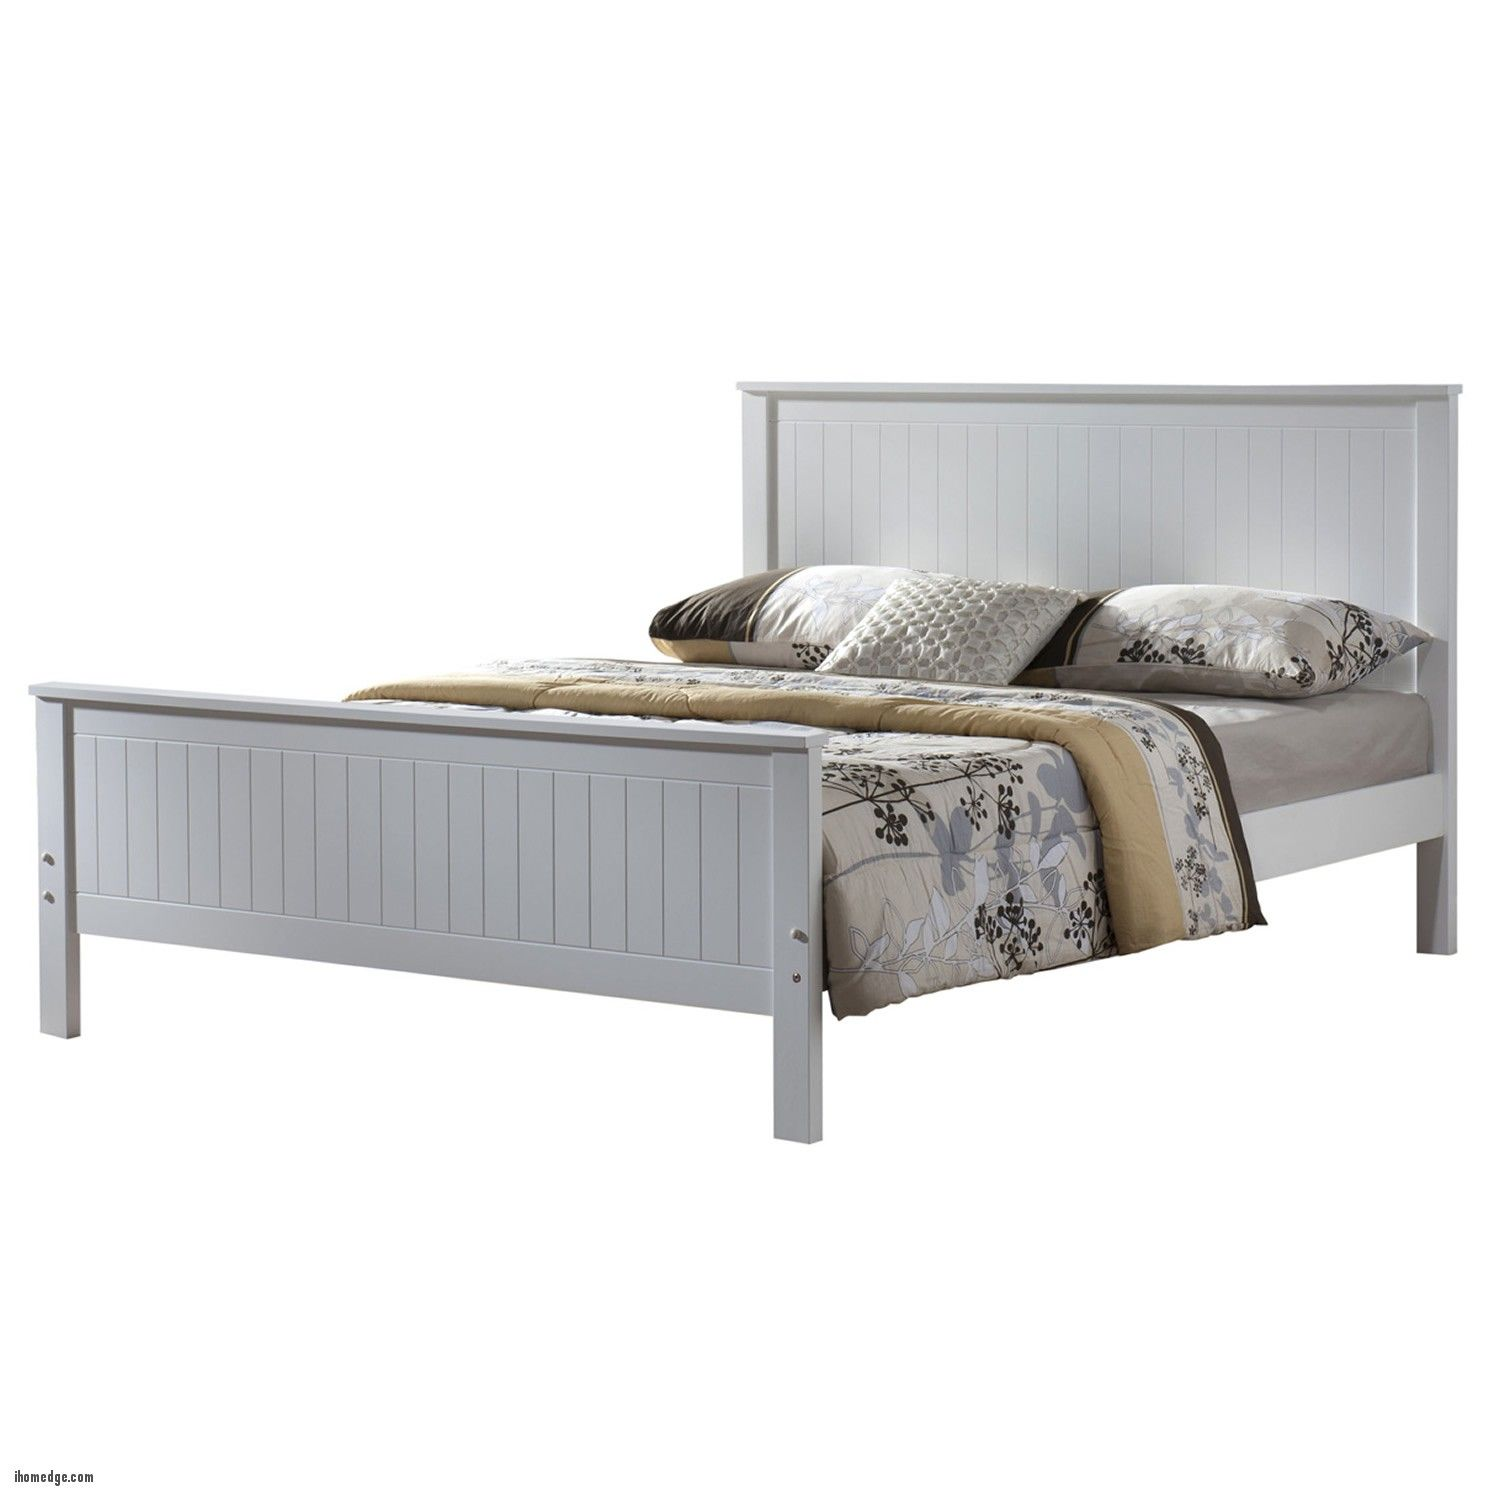 New Amazing White Bed Frame , Larissa White Wooden Bed